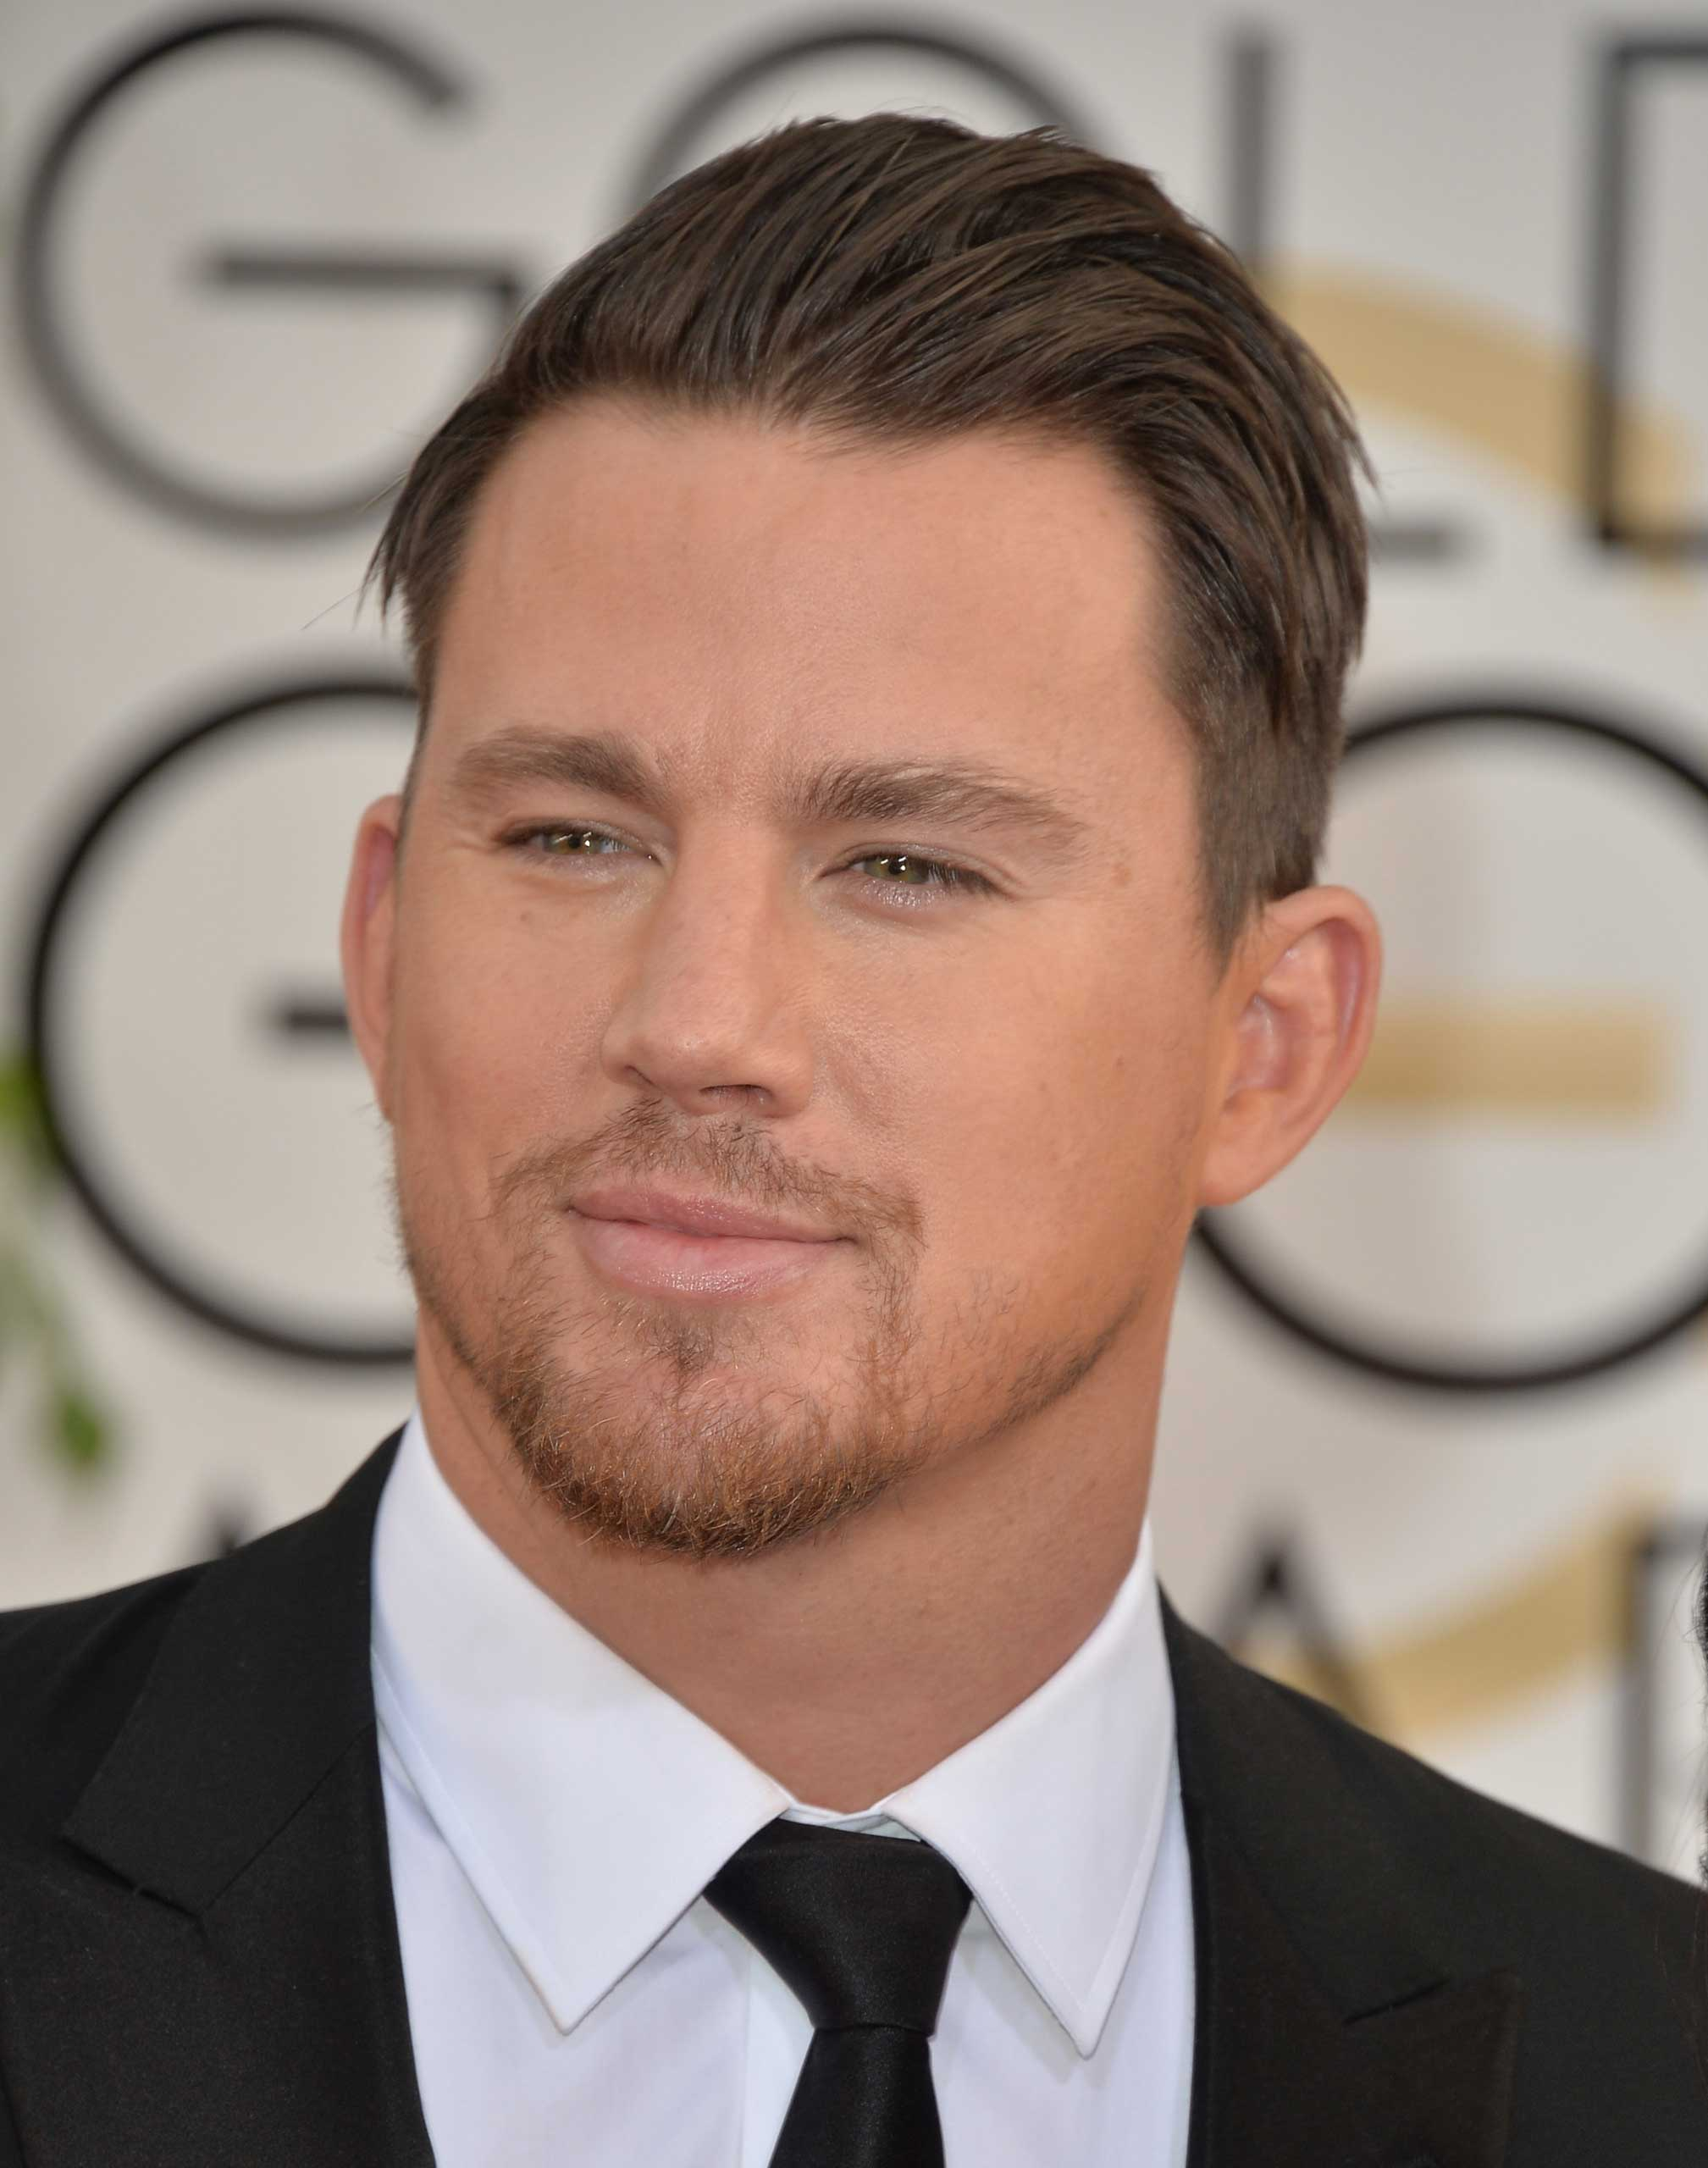 Channing Tatum at the 71st Annual Golden Globe Awards in Beverly Hills, Jan. 12, 2014.